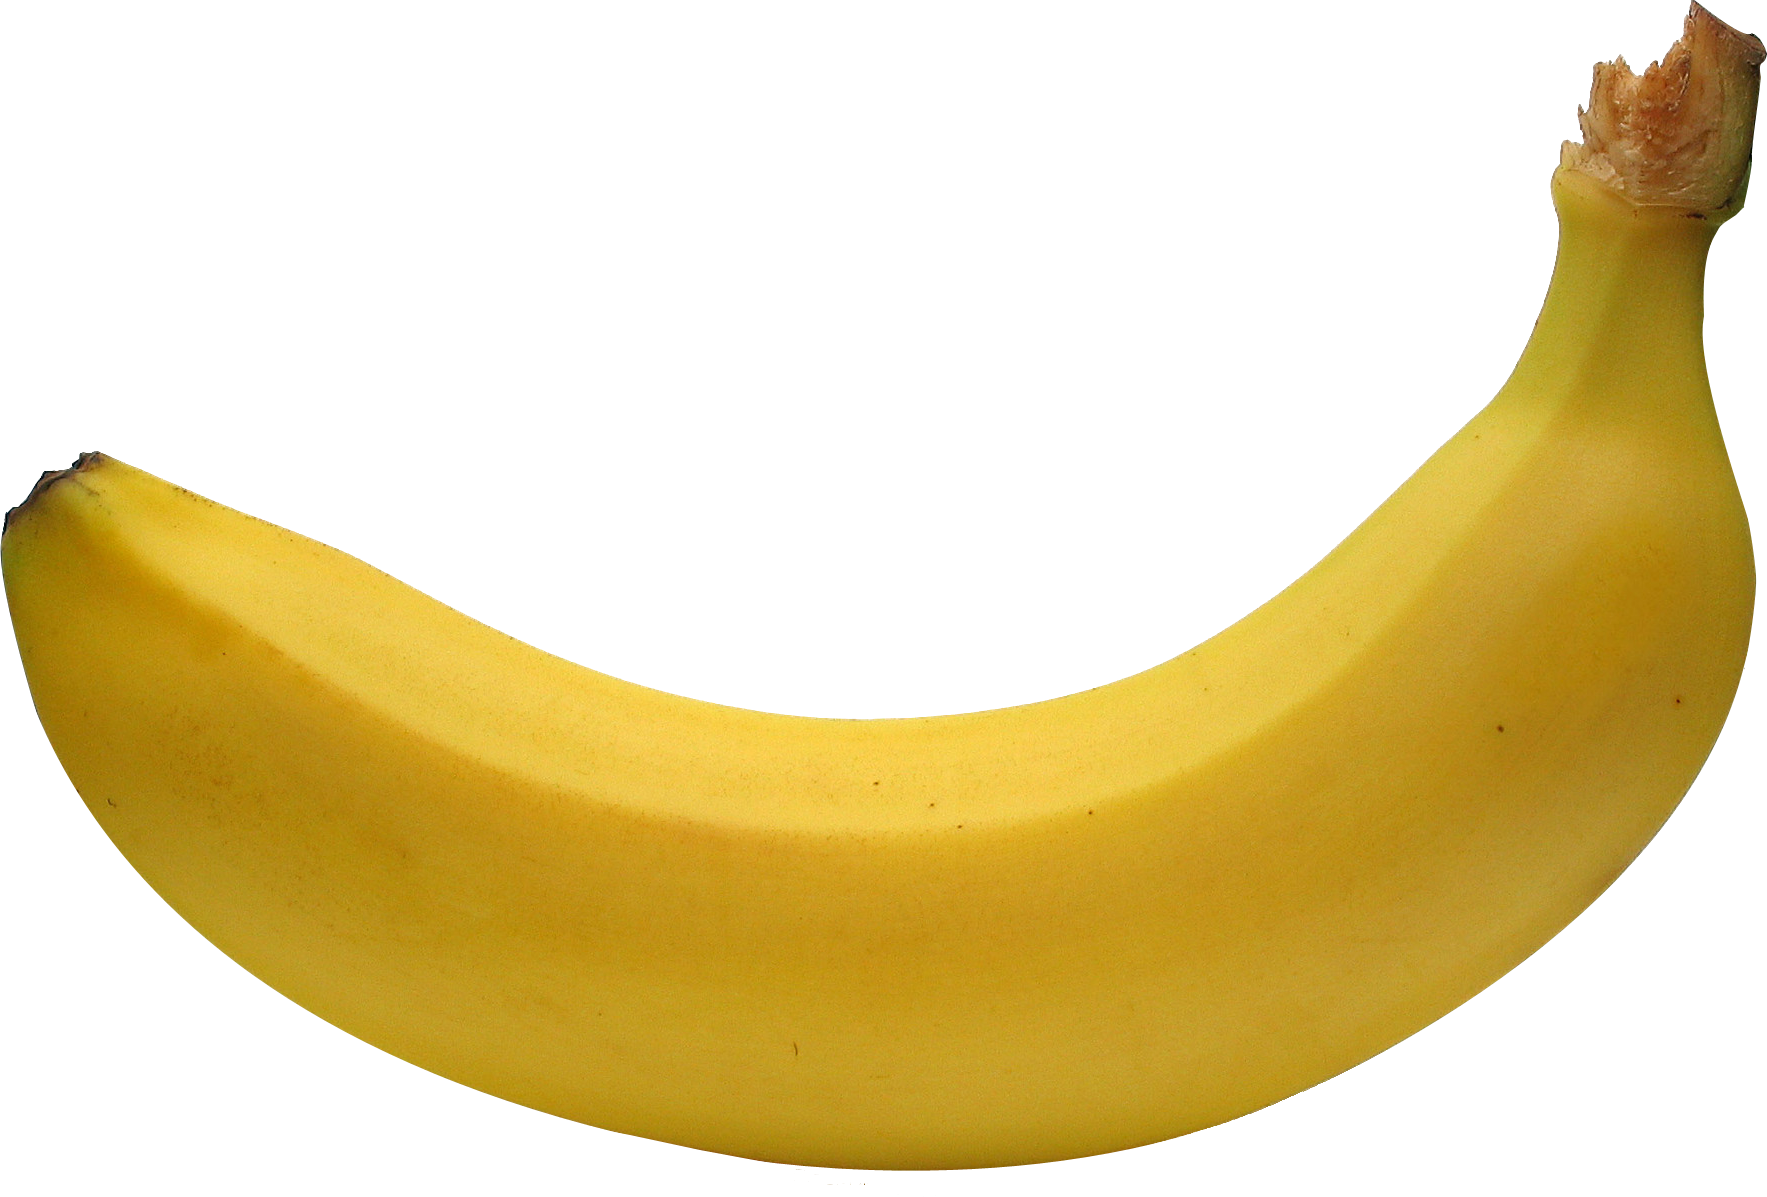 Png download icons and. Free clipart banana